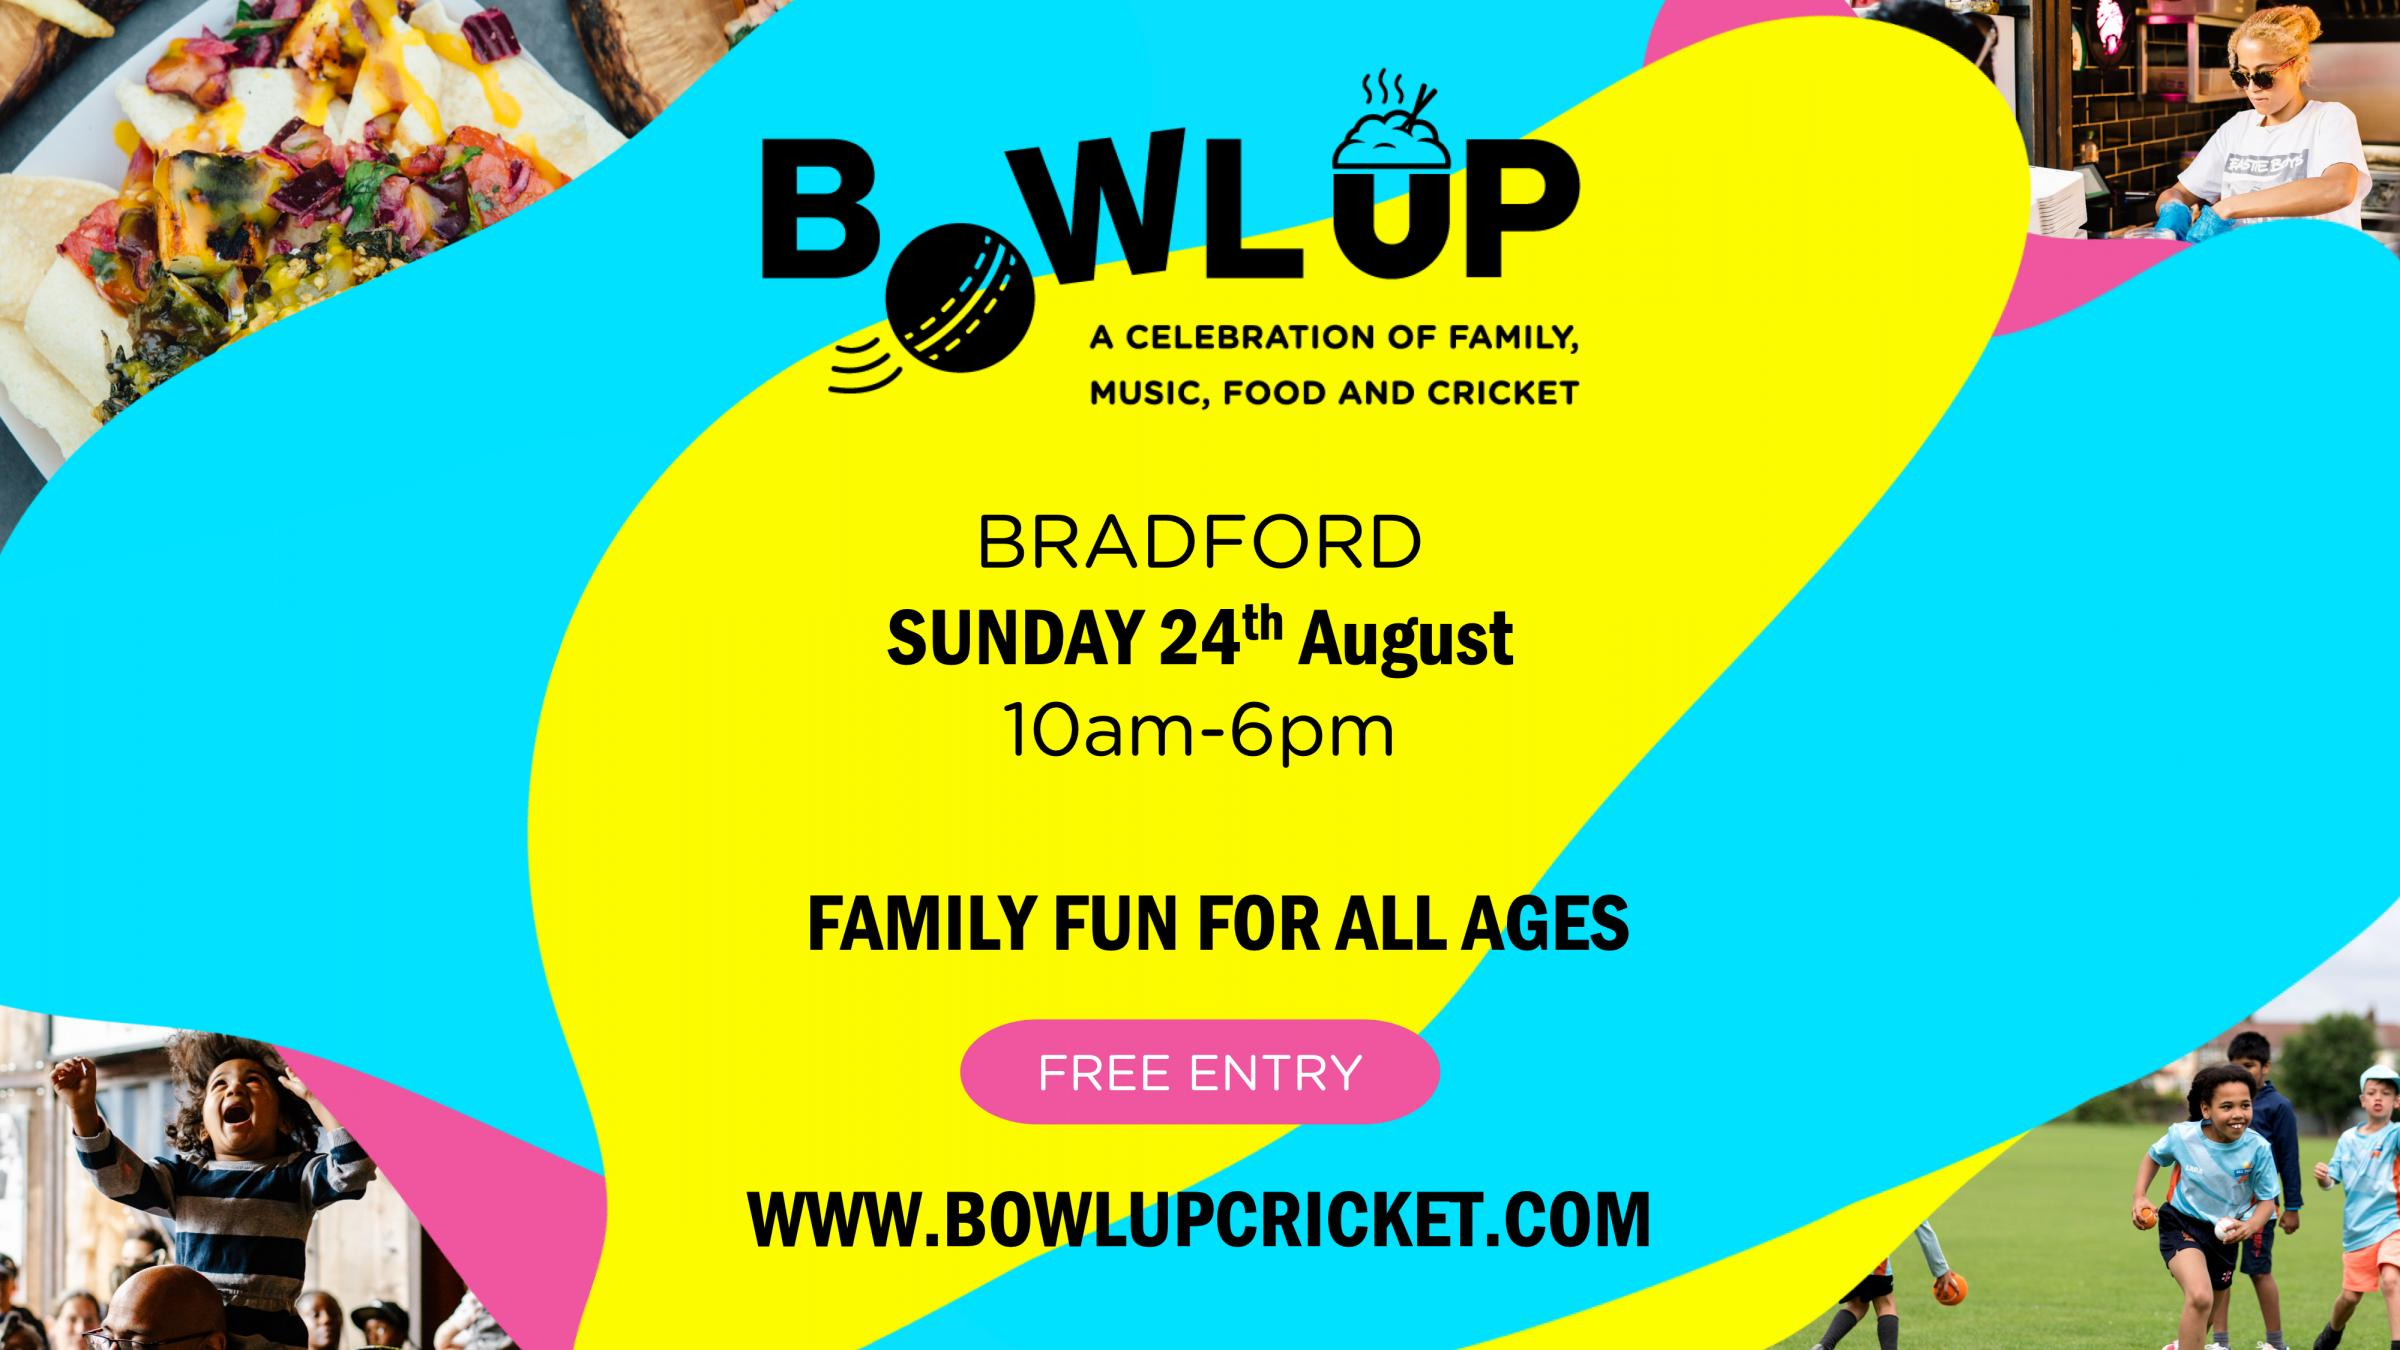 Bowl Up: A celebration of Family, Music, Food and Cricket!